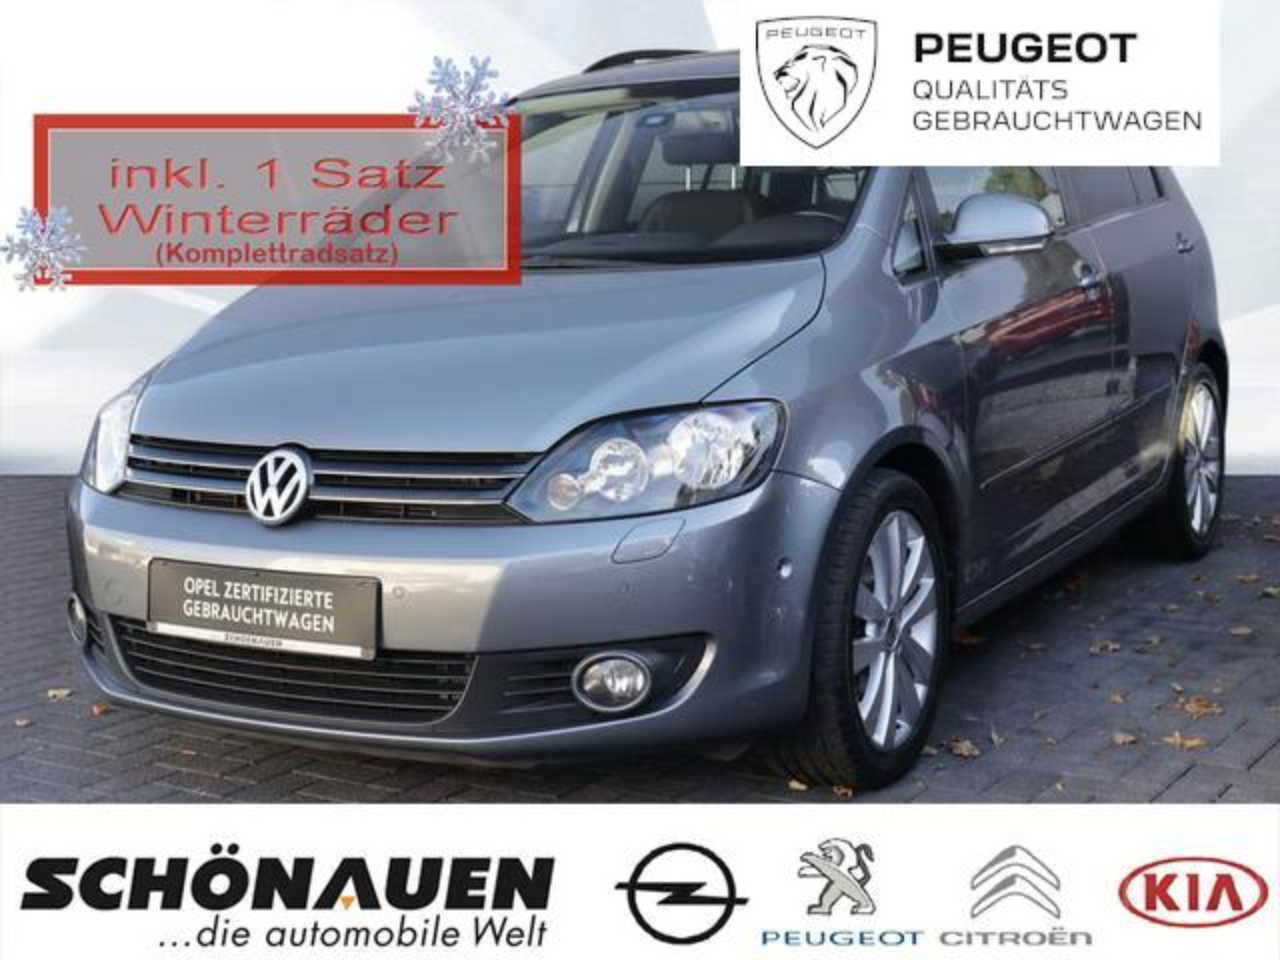 Volkswagen Golf PLUS 1.4 TSI TEAM +WINTER-PACK+PDC+16LM++